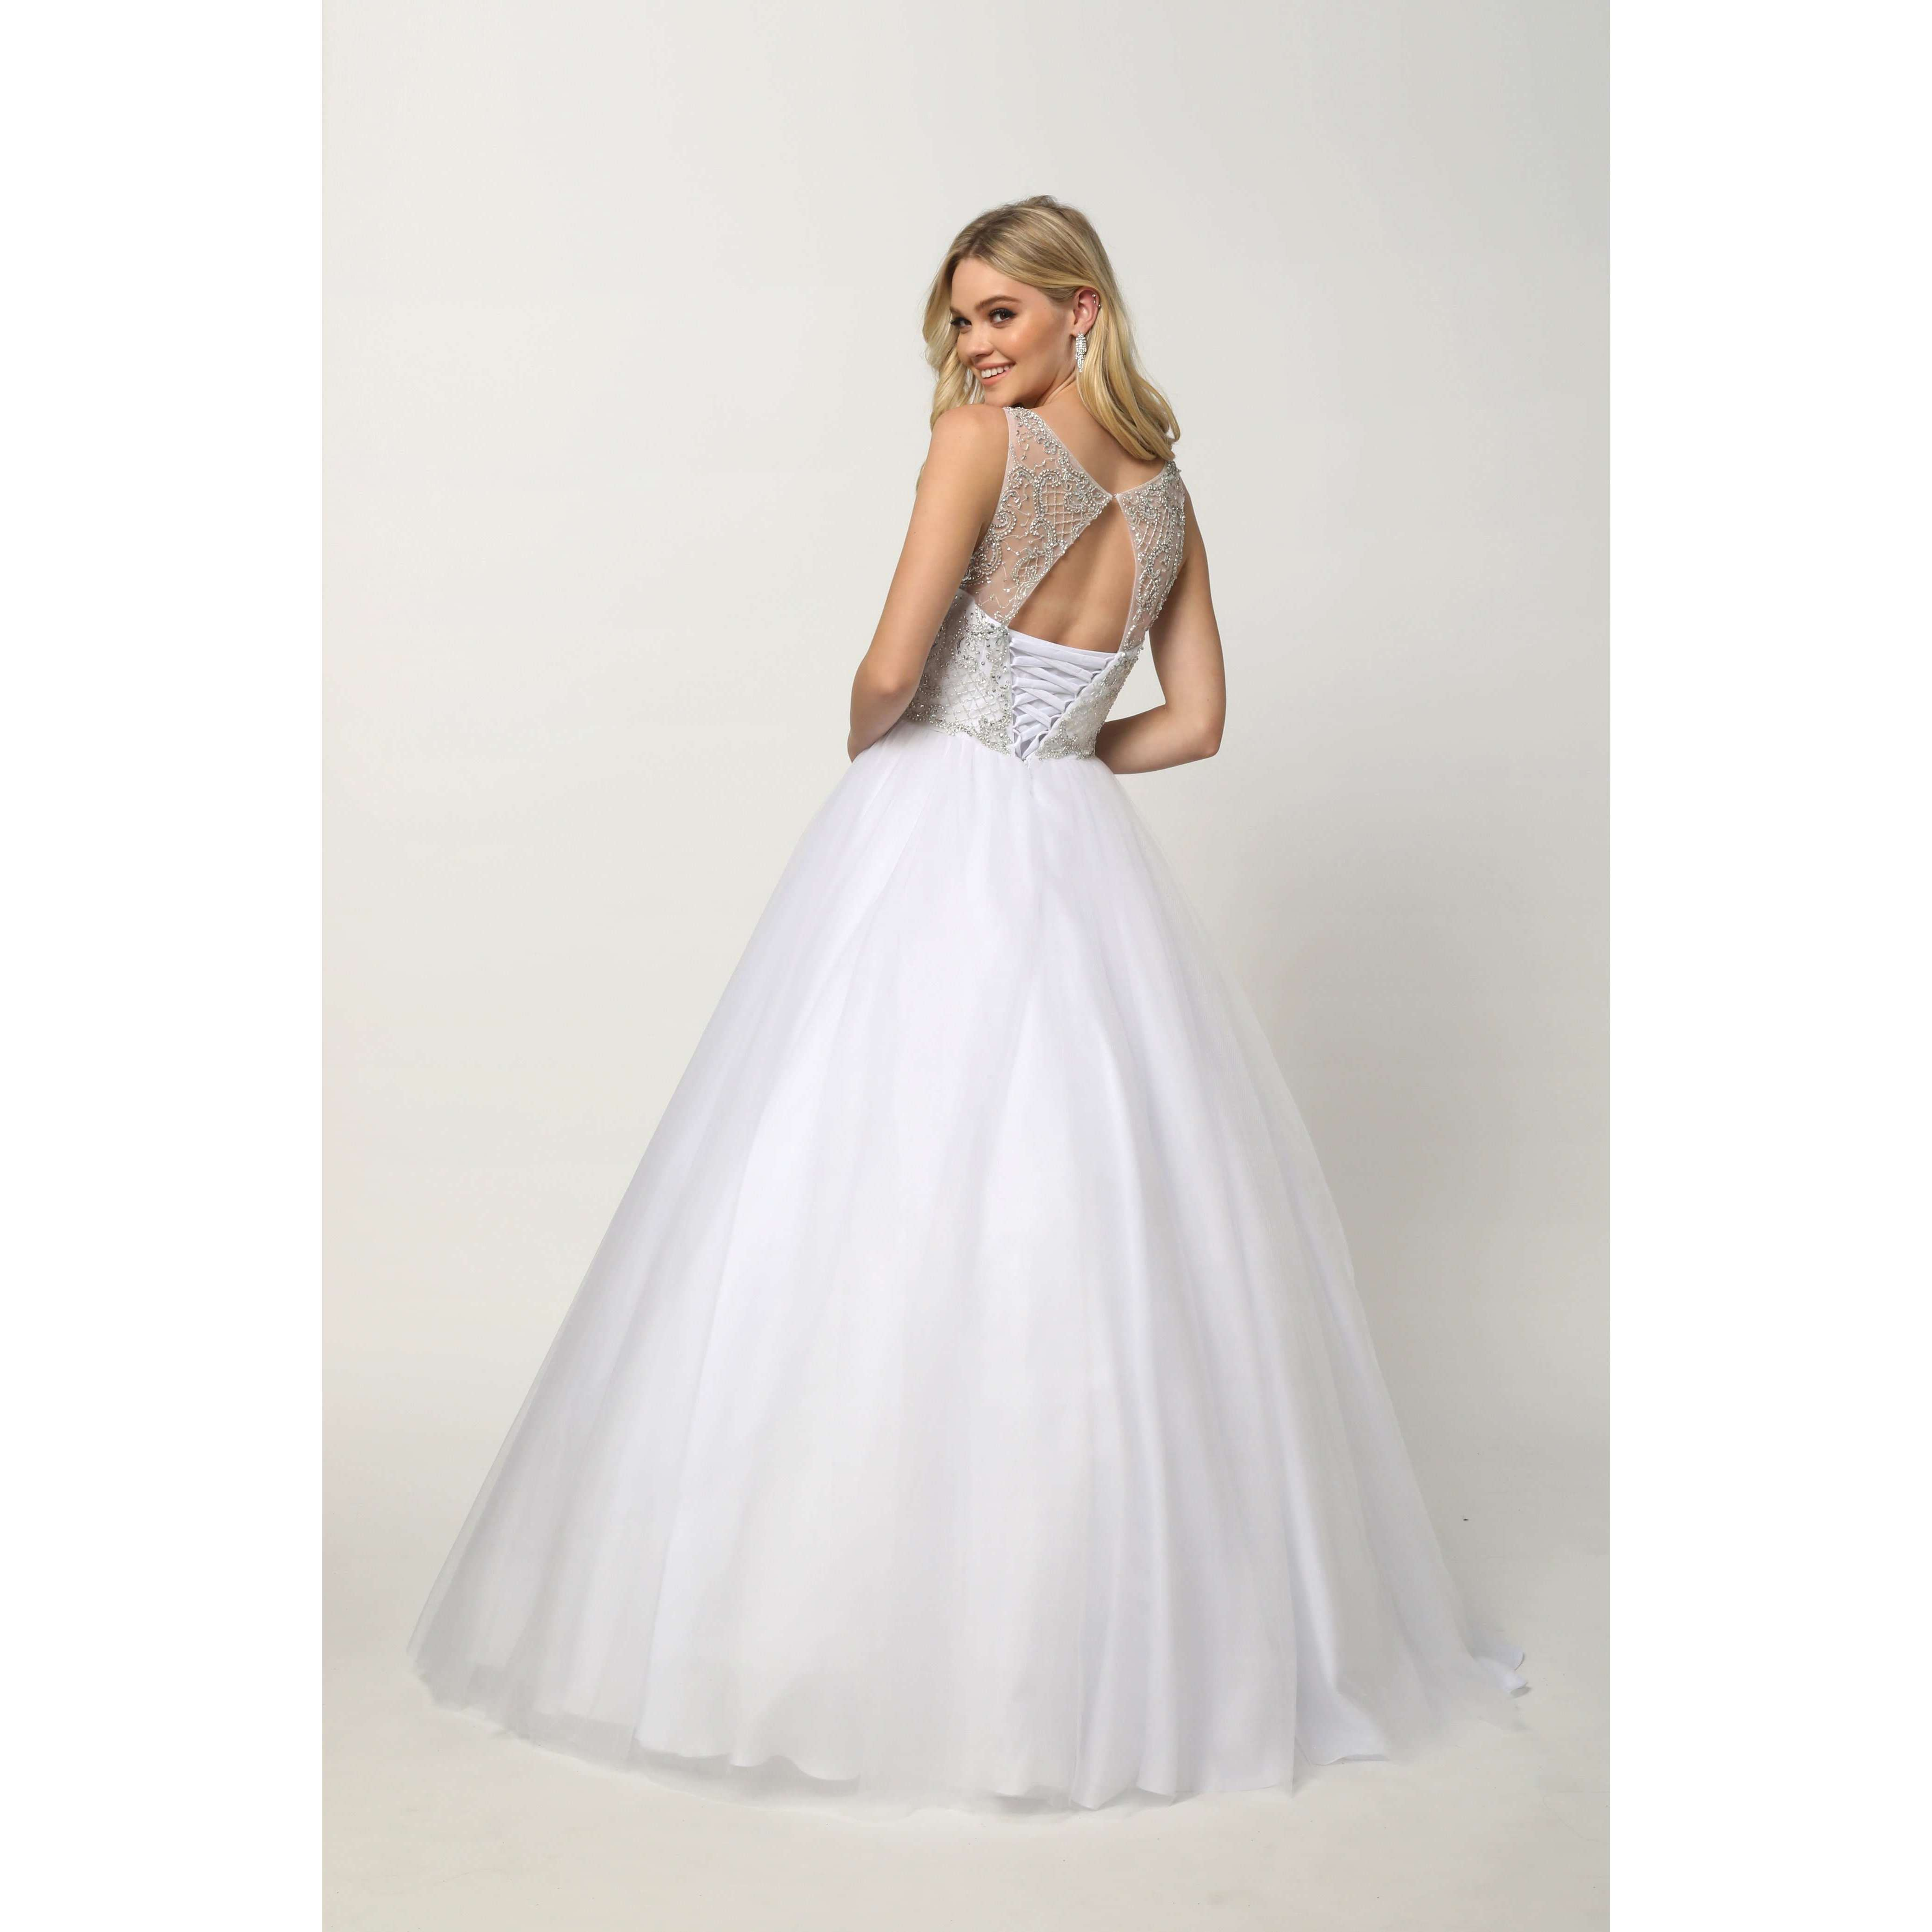 Beaded High Neck Bodice with keyhole back on Tulle Ballgown 1417W - Julietdresses